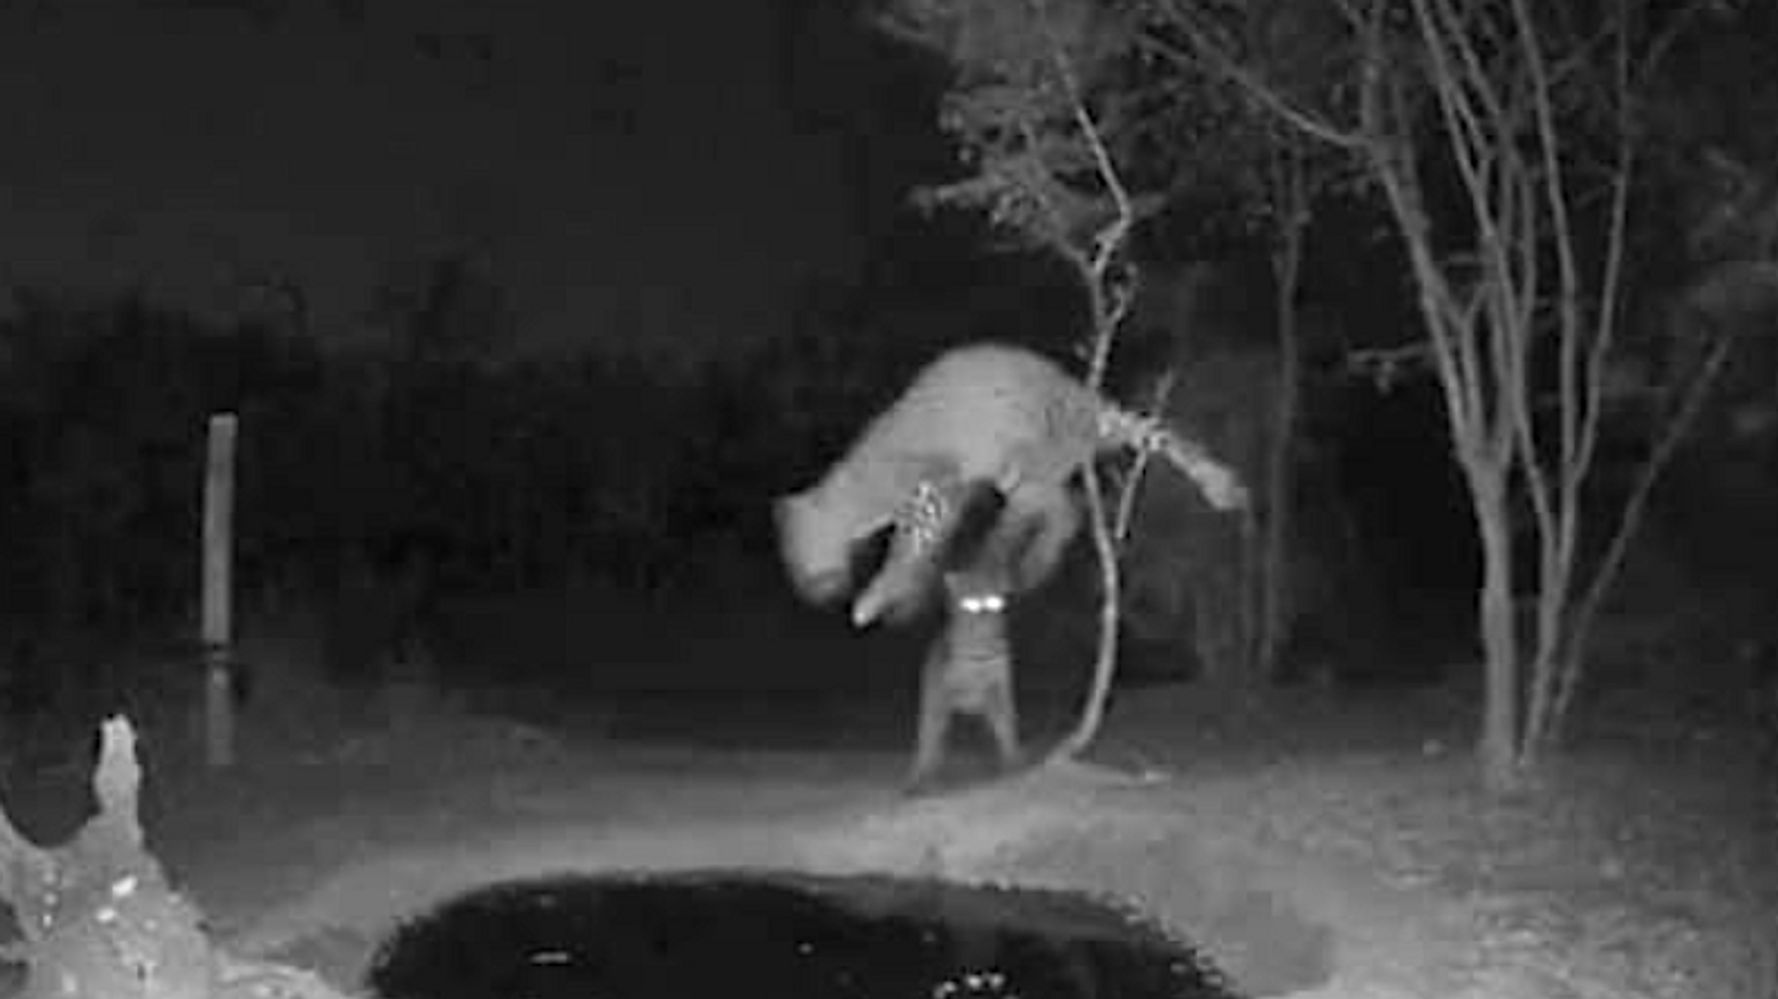 Leapin' Leopards! One Big Cat Startles Another At A Night Watering Hole